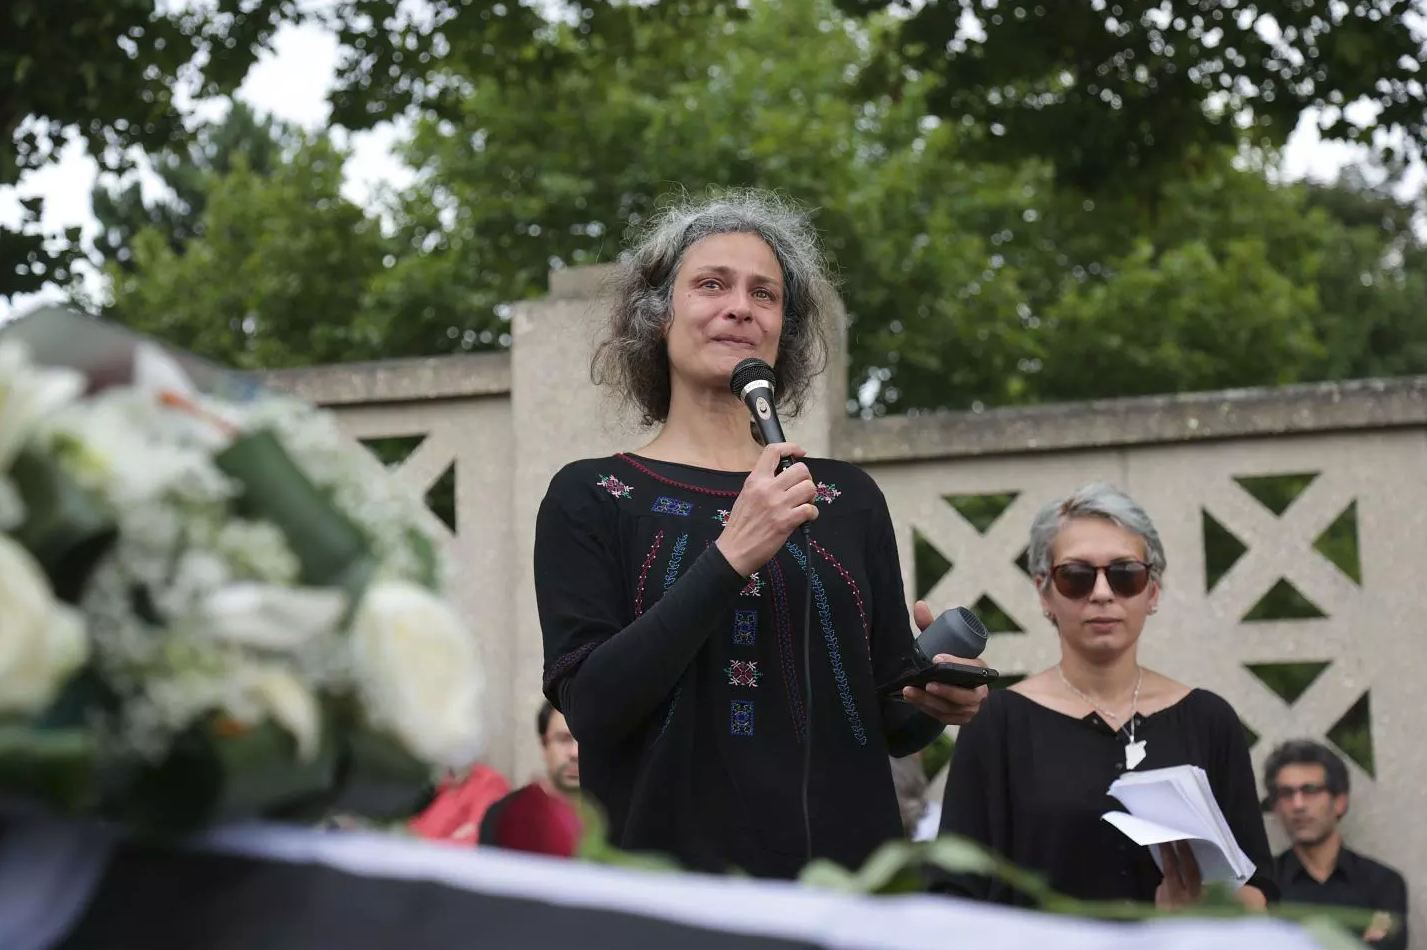 A 2017 file picture shows Syrian actress May Skaf delivering a speech in Montreuil, east of Paris. (AFP)